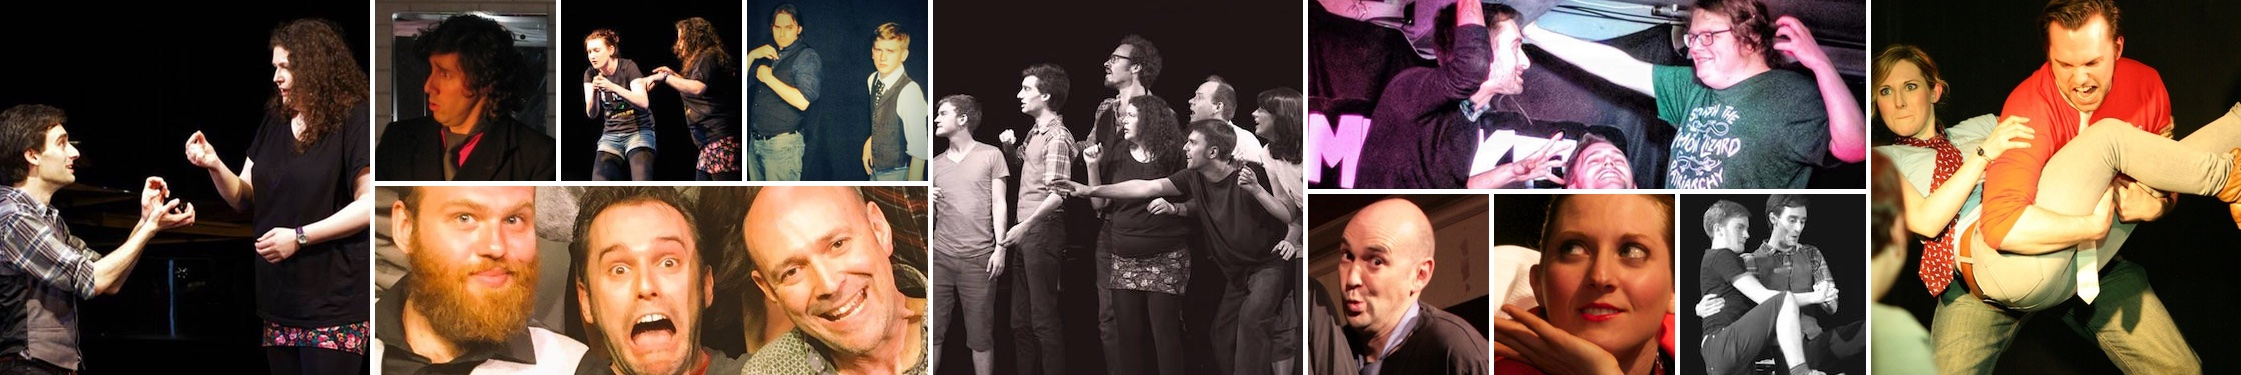 TBC Improv - Edinburgh's own improv comedy theatre company - entertaining the capital and beyond since 2009